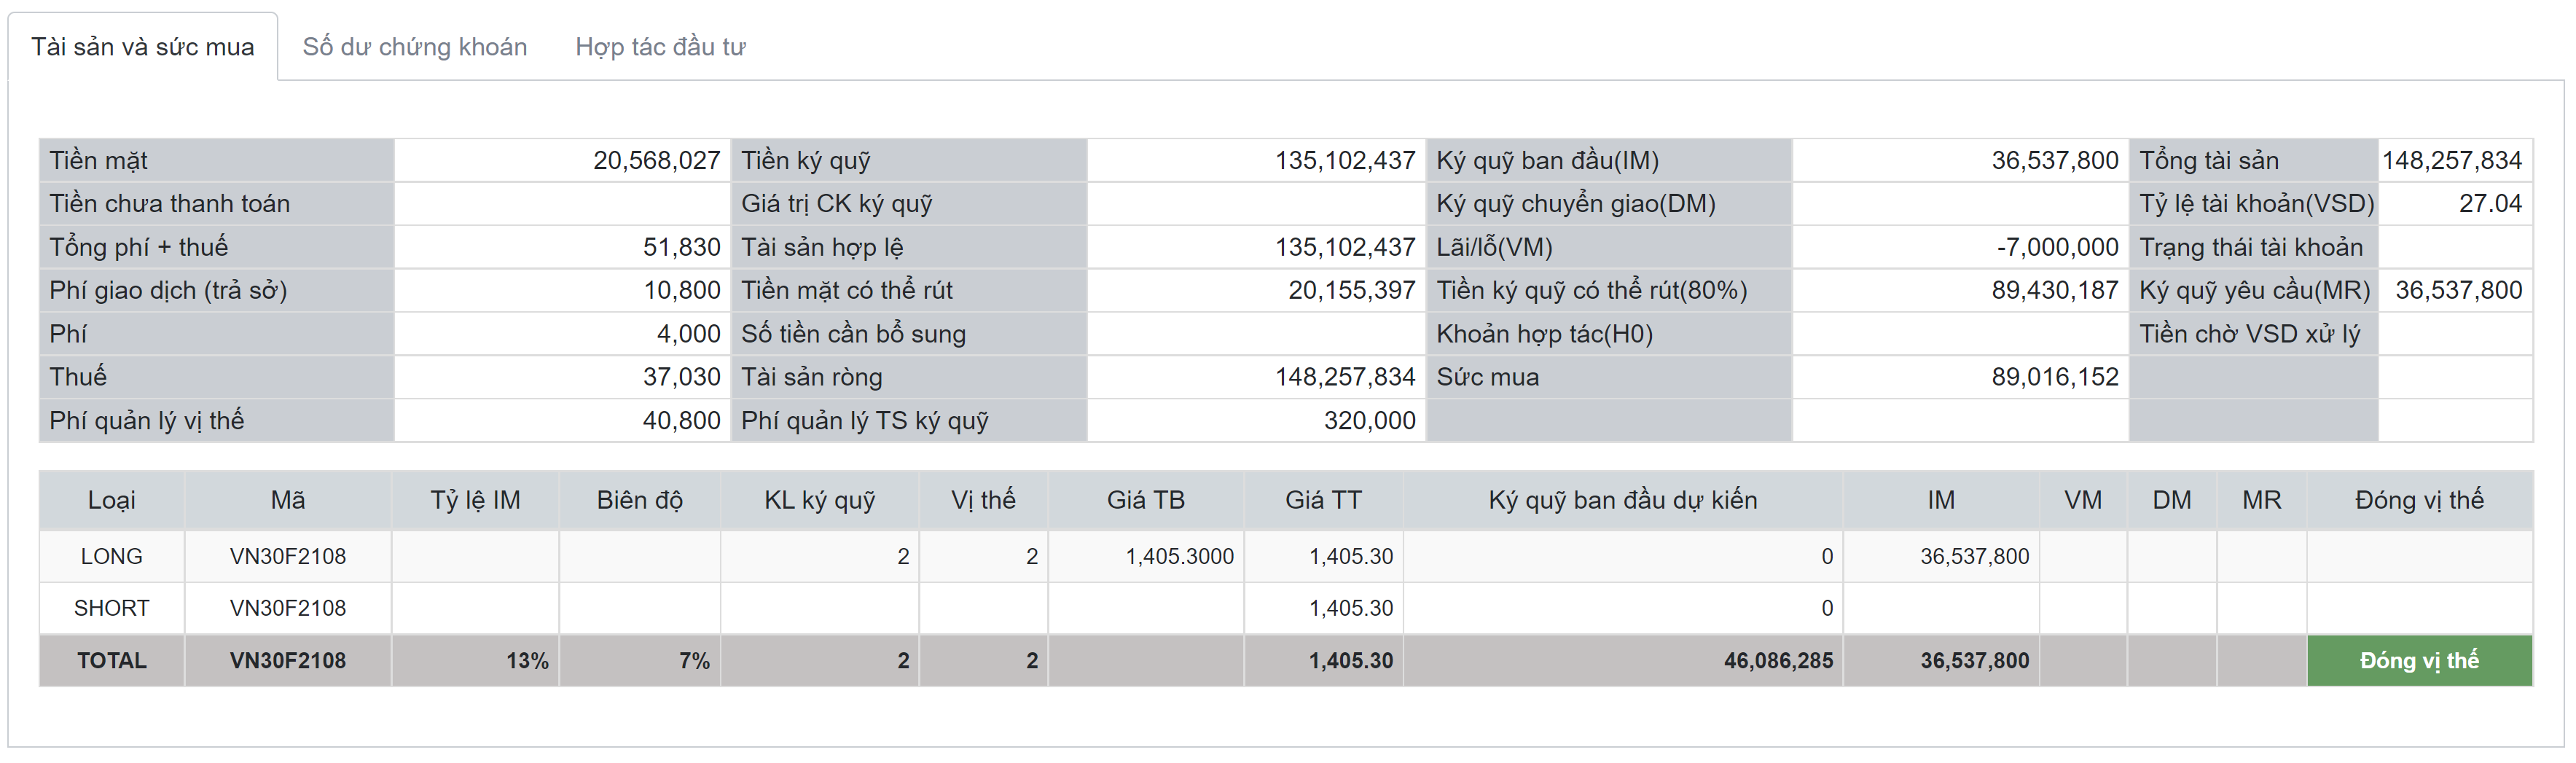 TRADE #7_20210727_1103_VPS_VN30F2108_H1_LONG_OPEN_SUPERTREND_CURRENT TOTAL BALANCE AND POSITION.